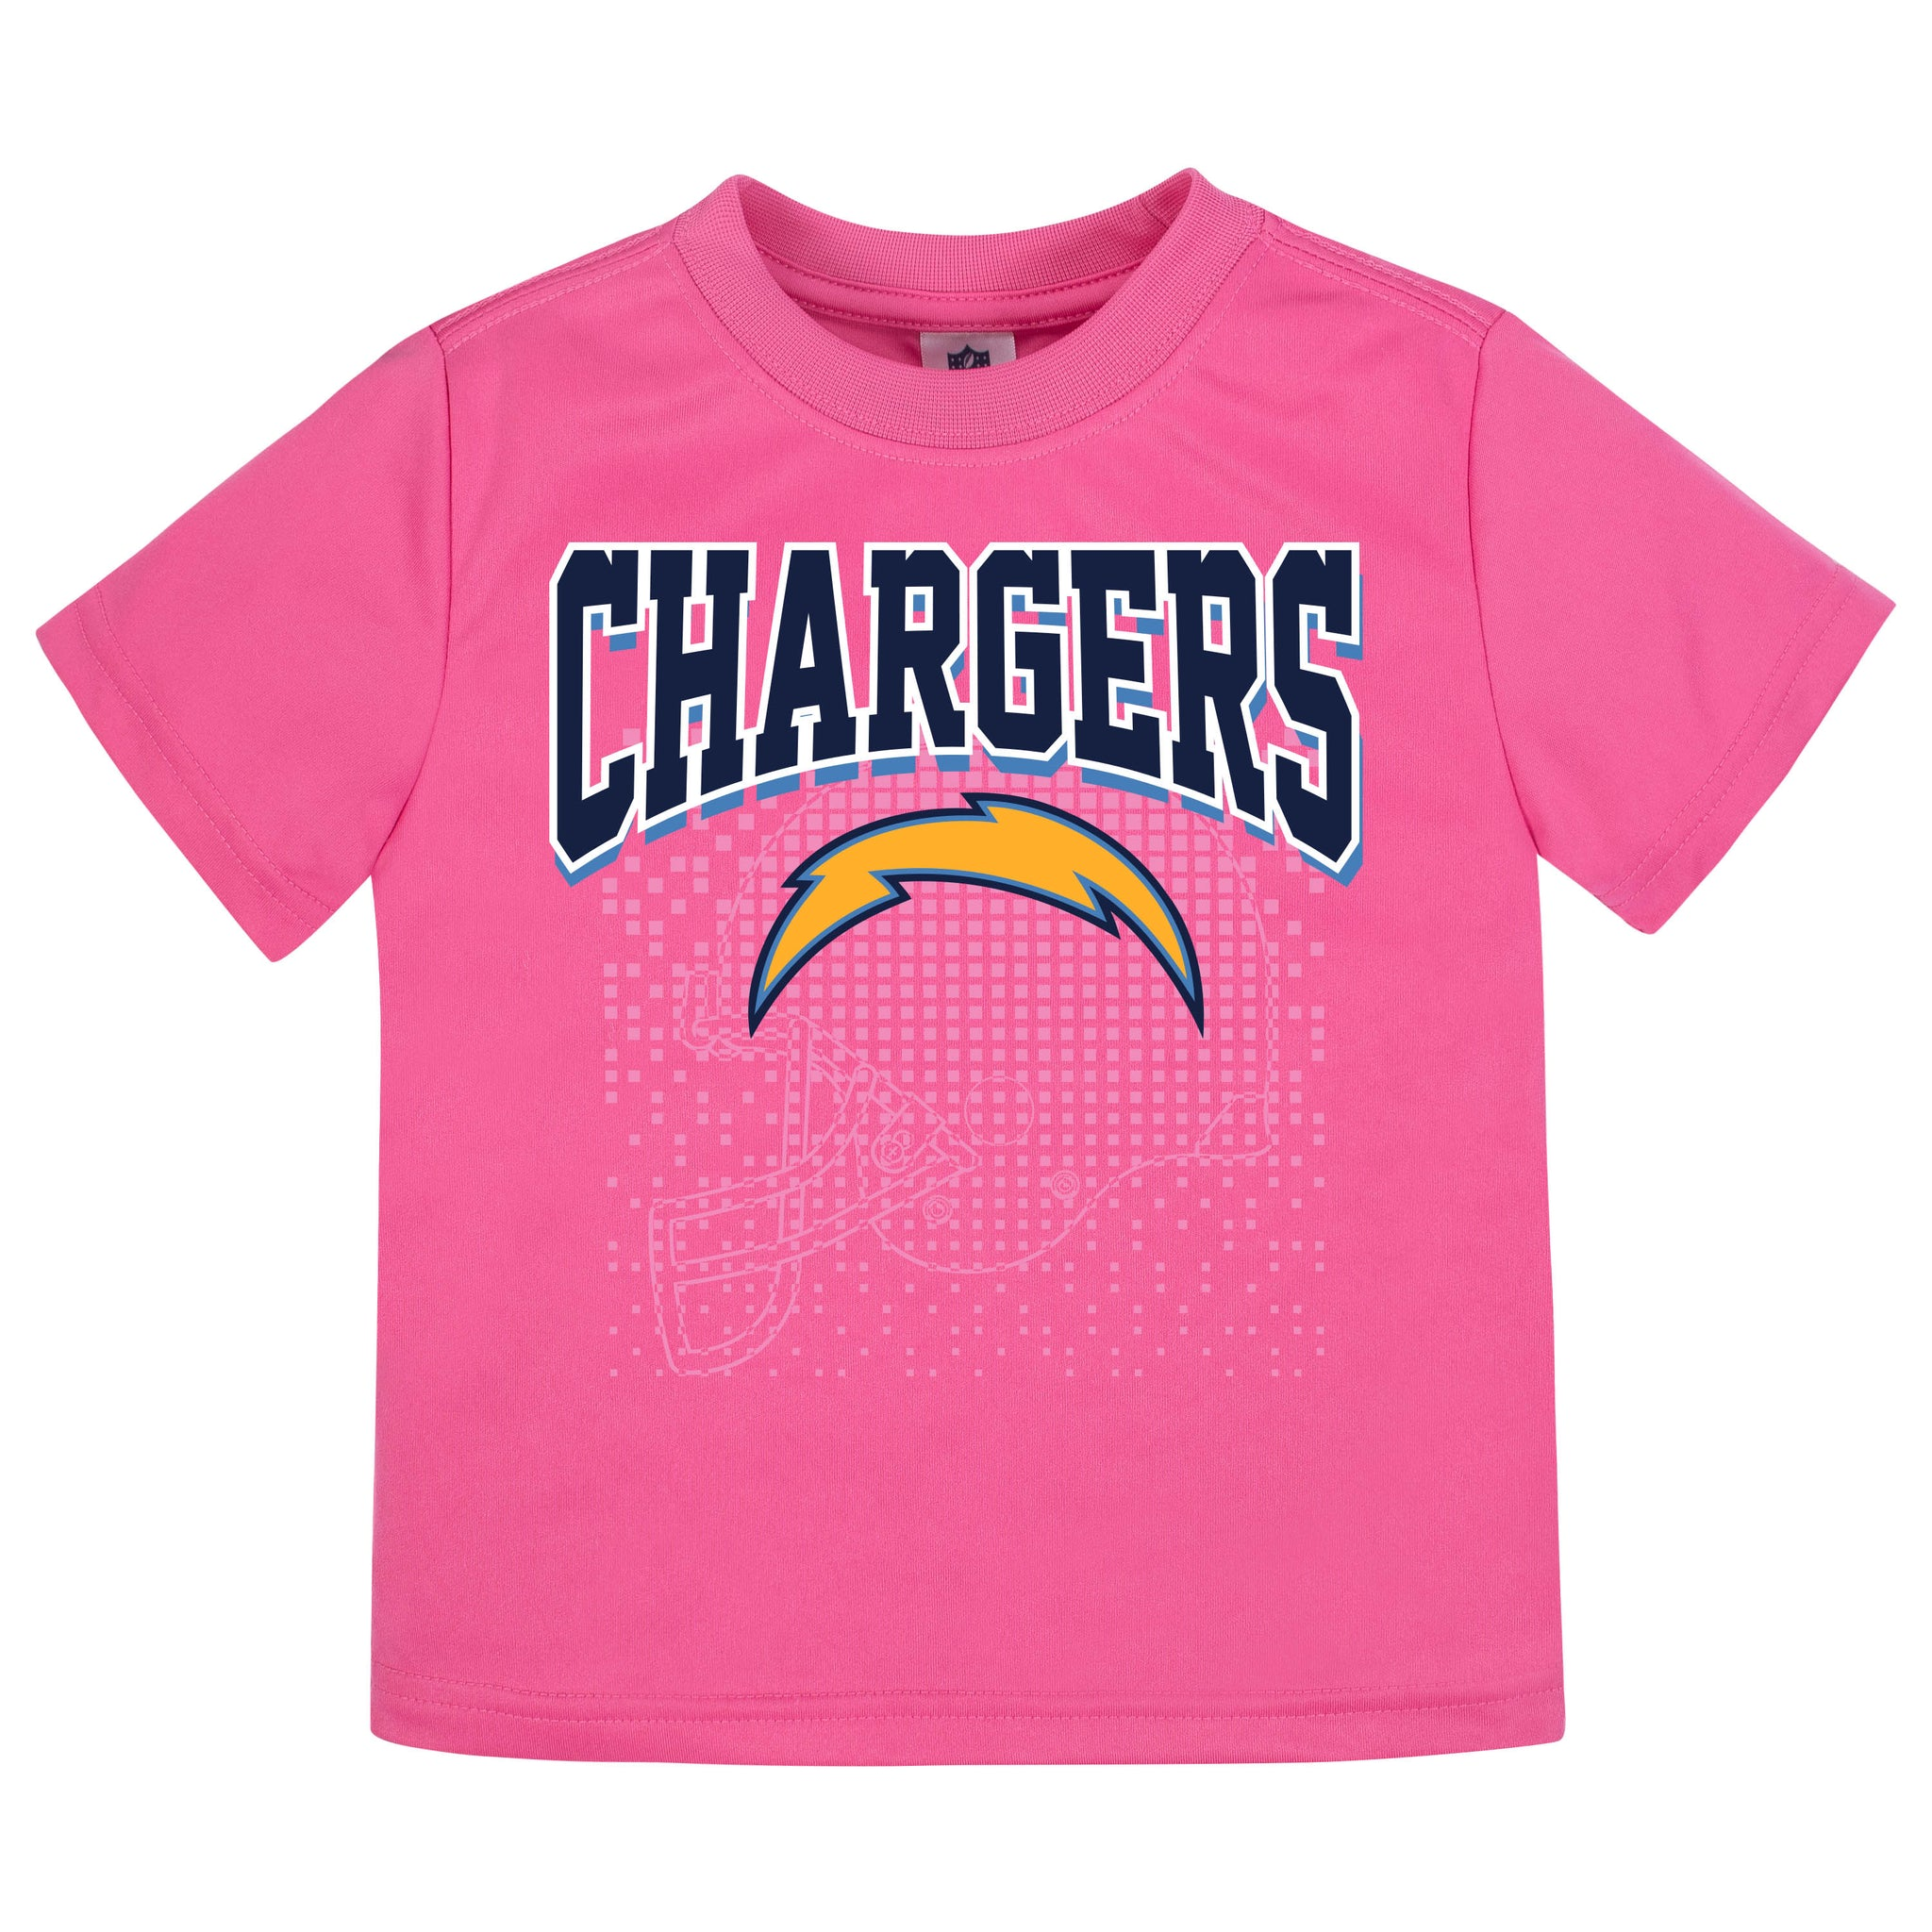 Los Angeles Chargers Toddler Girls Short Sleeve Tee Shirt-Gerber Childrenswear Wholesale